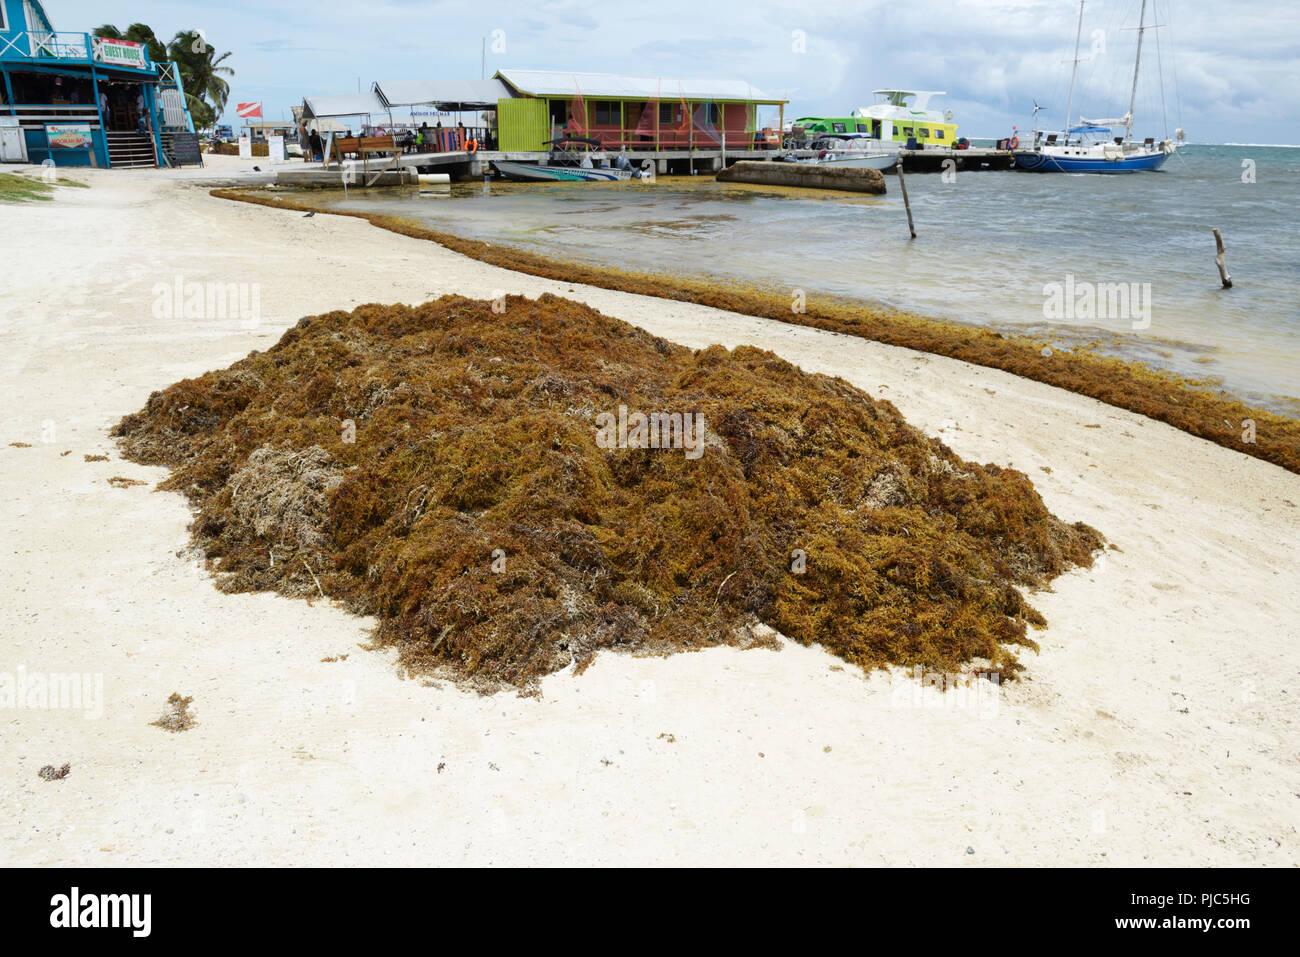 Seaweed Caribbean Stock Photos & Seaweed Caribbean Stock Images - Alamy